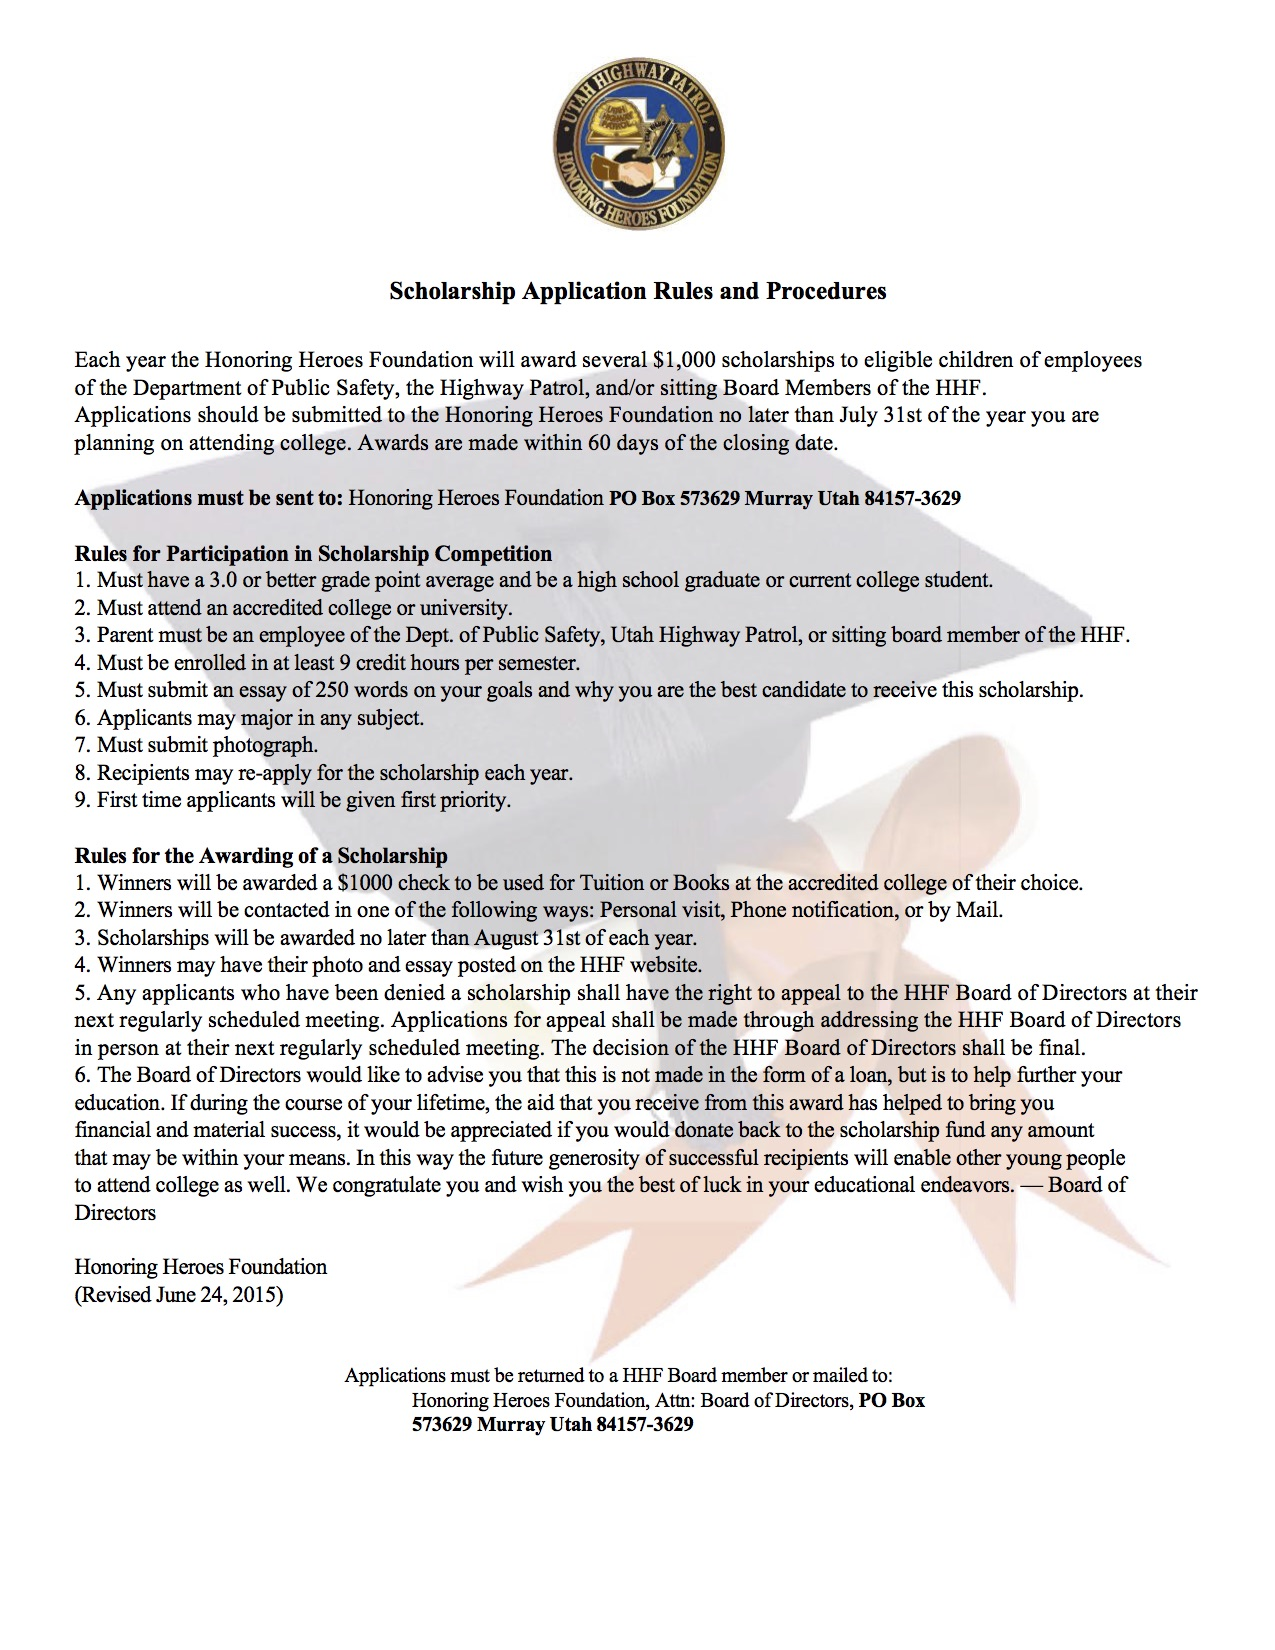 HHFScholarship Rules_1 2